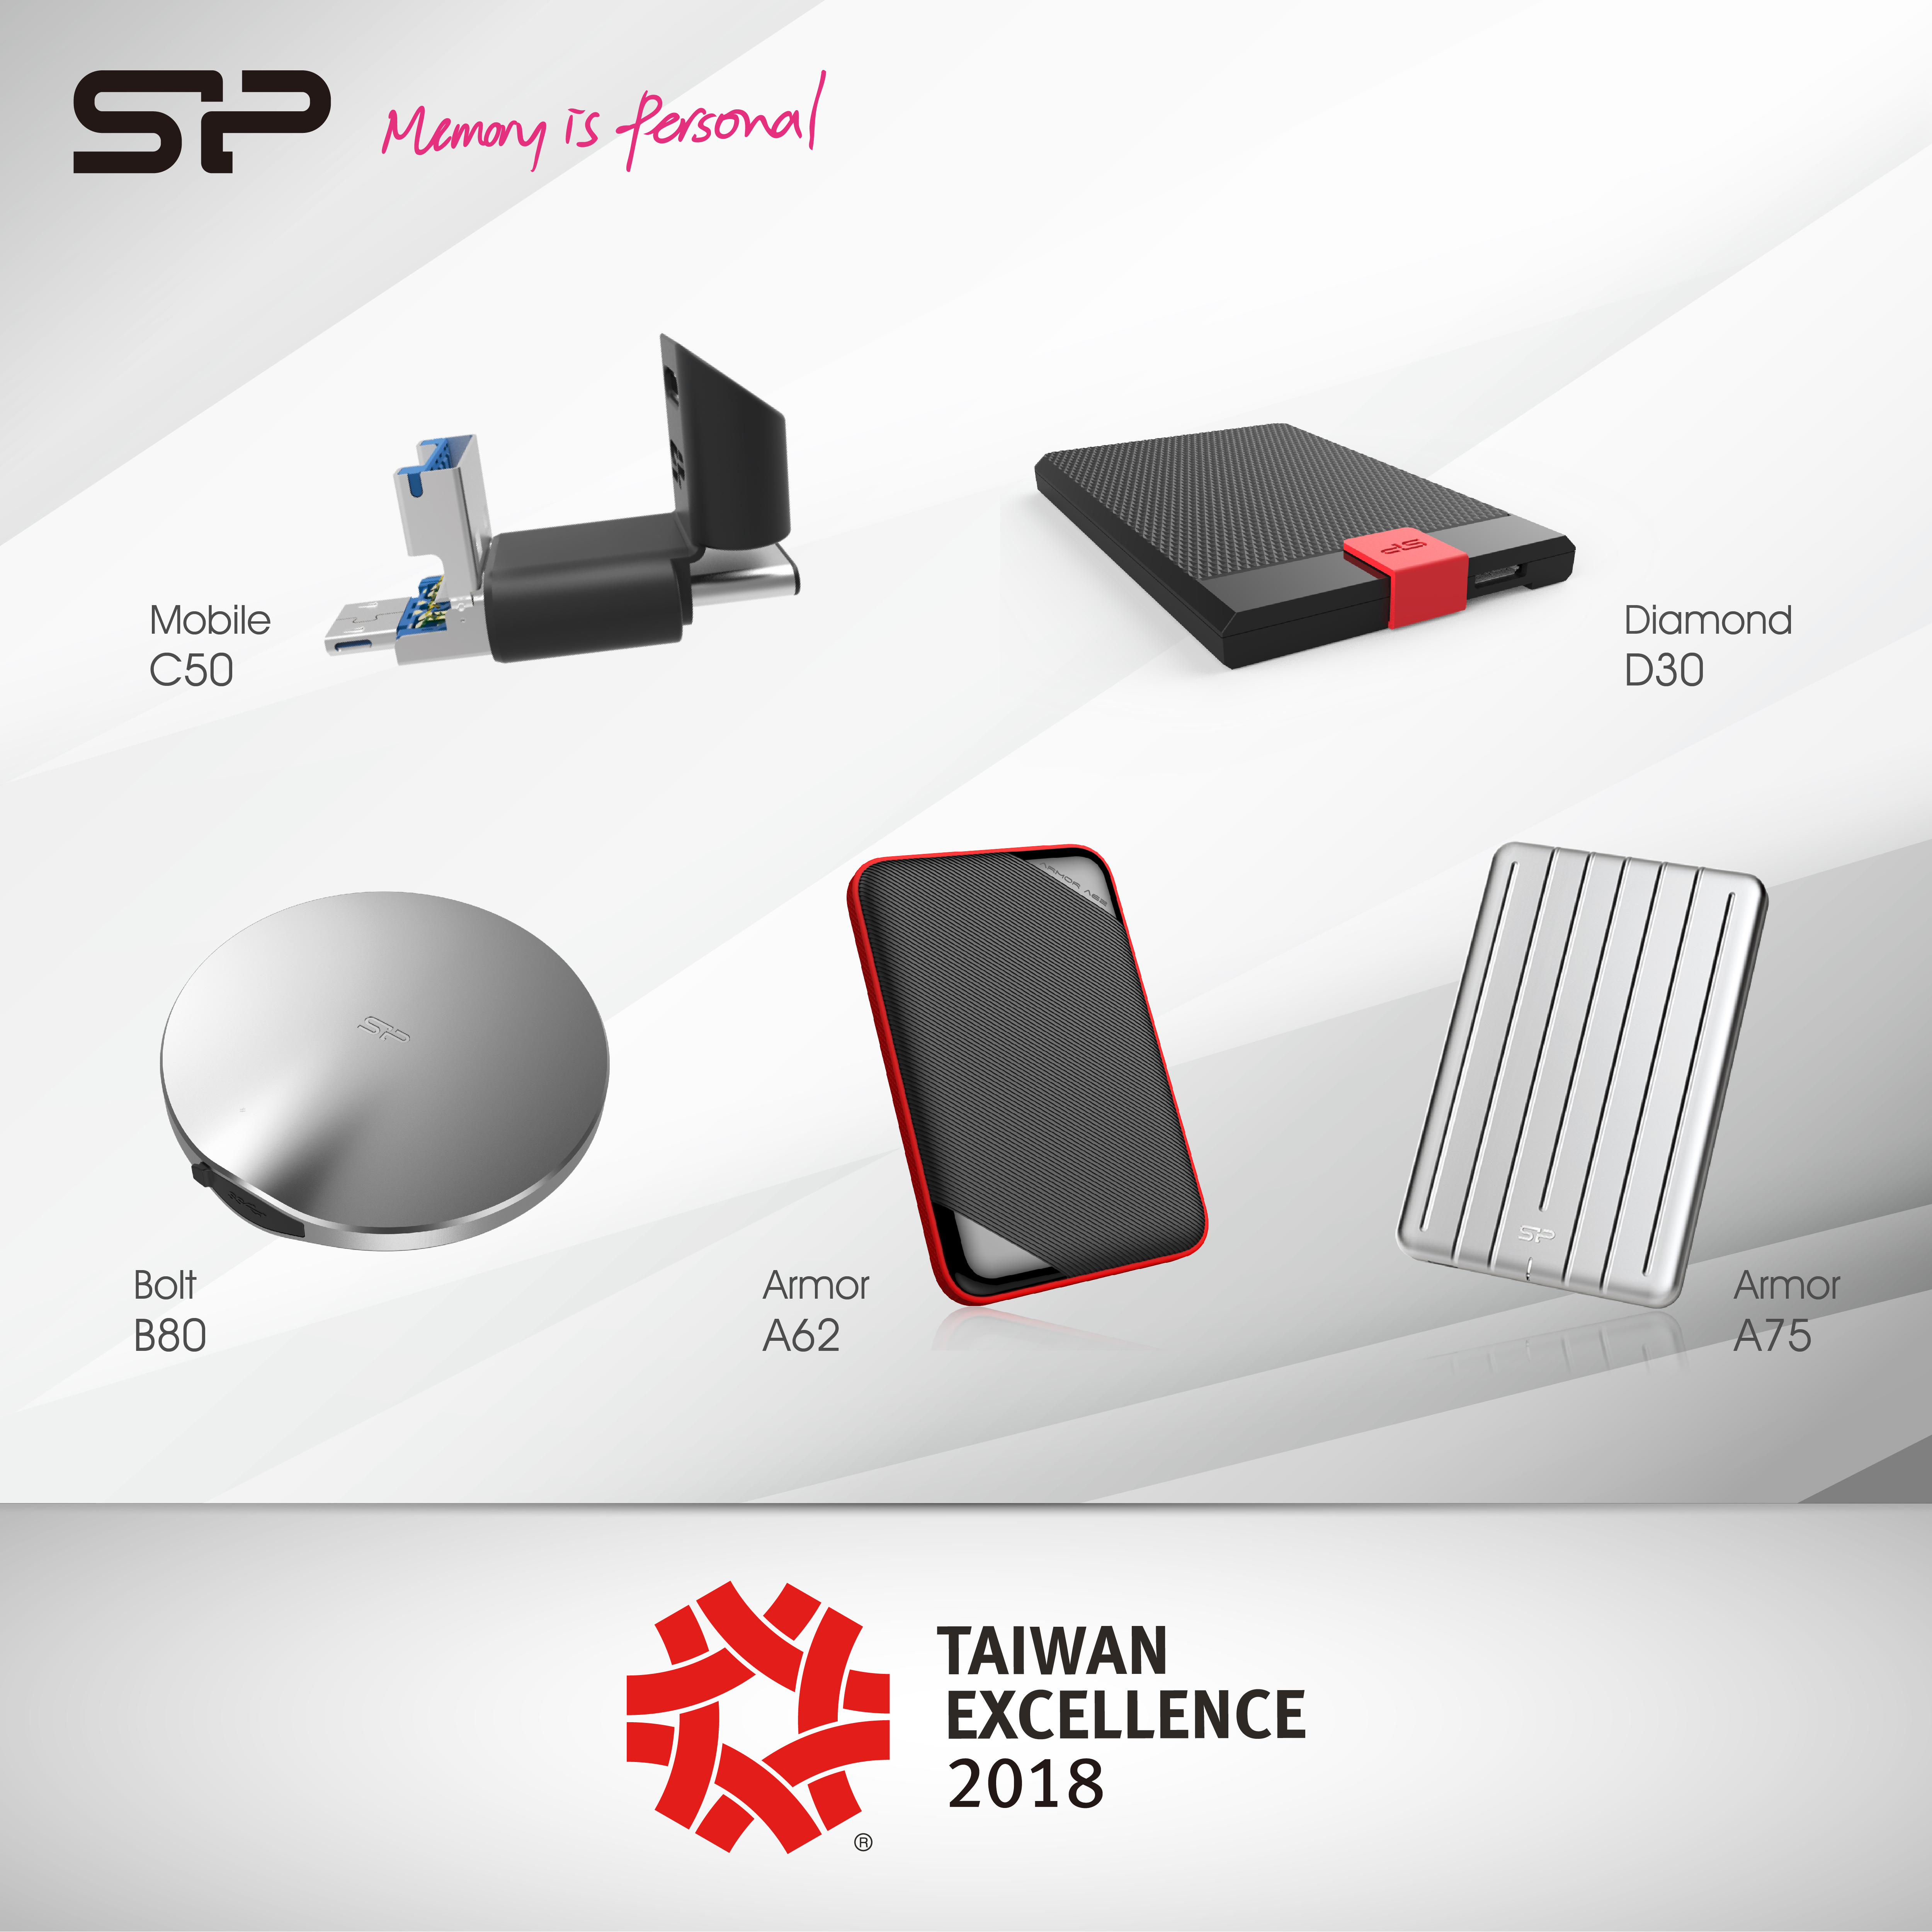 Autumn Showers SP With Five Taiwan Excellence Awards